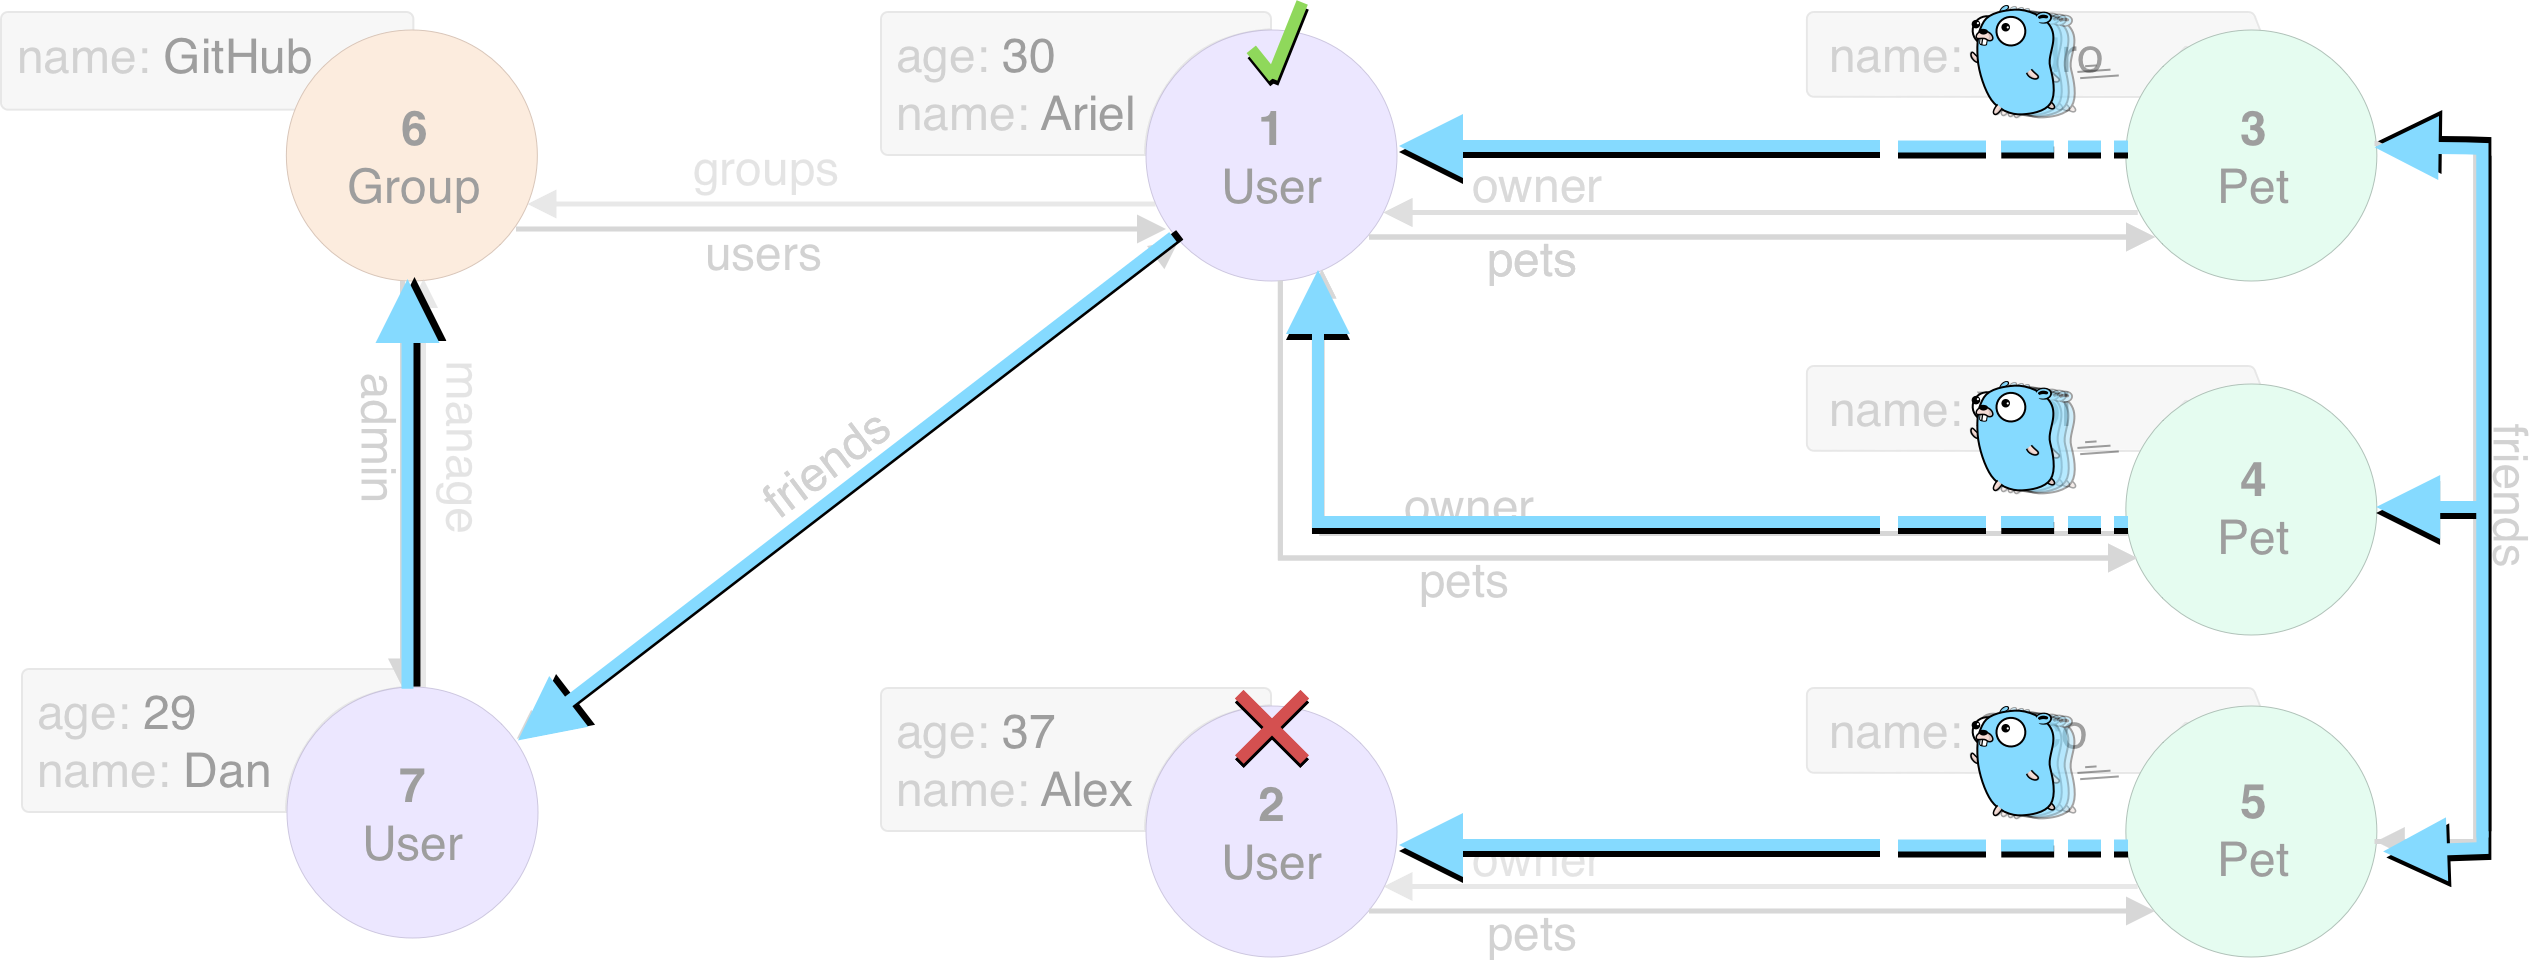 er-traversal-graph-gopher-query